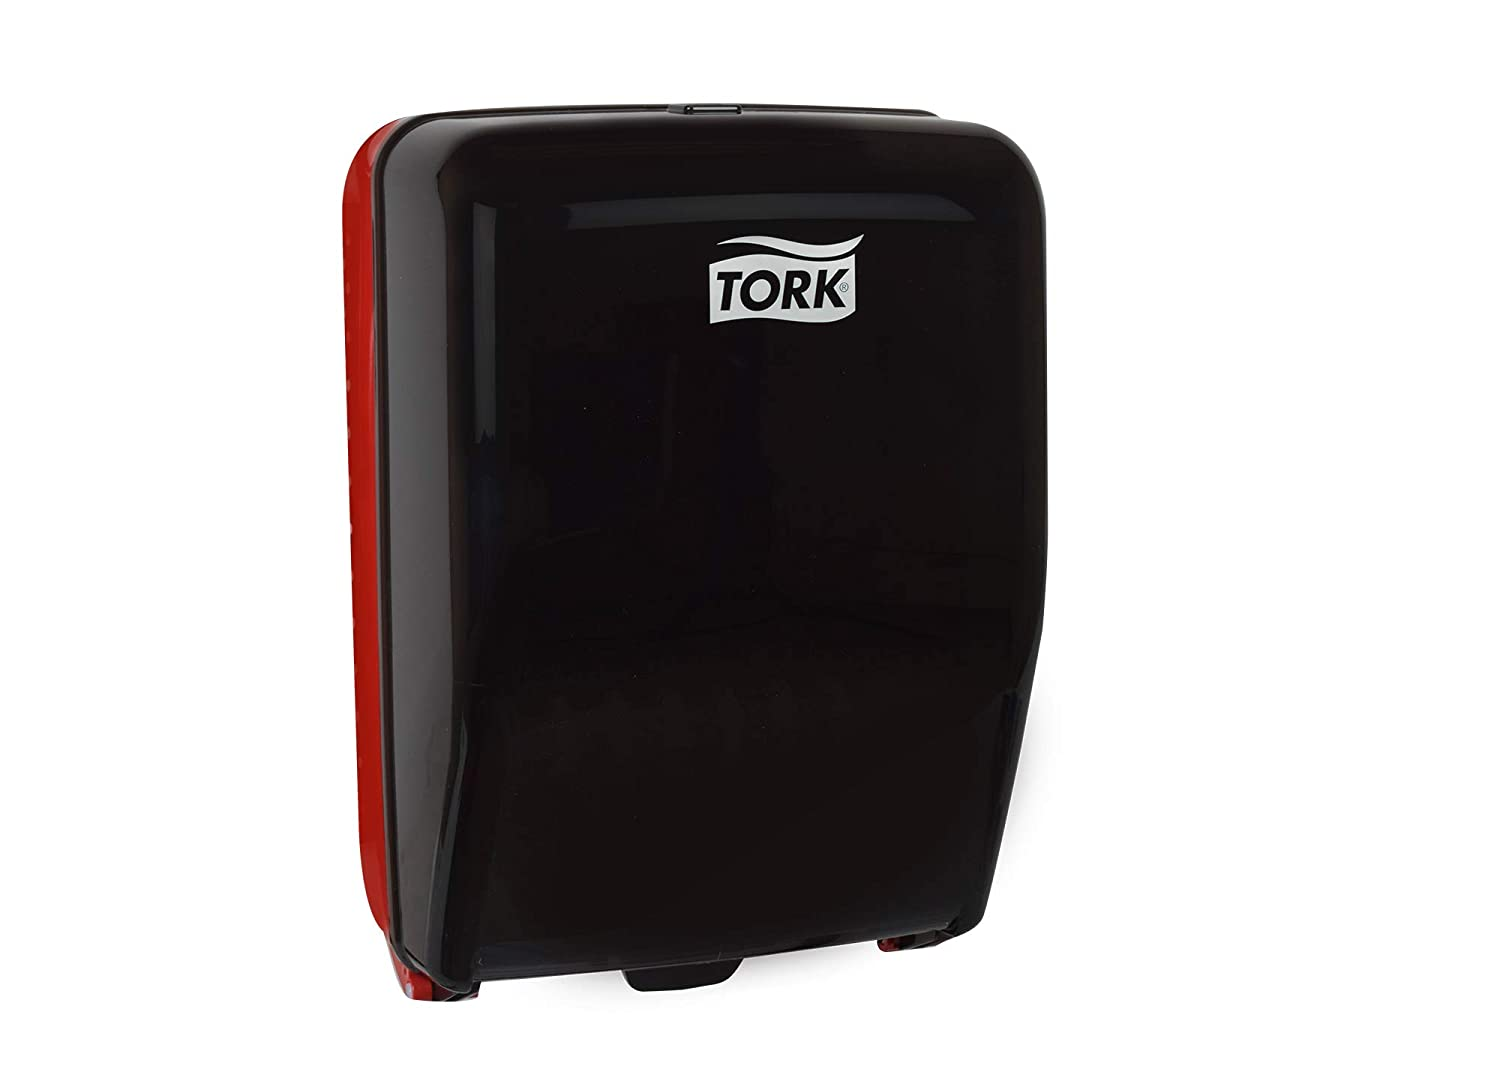 Tork 651228 Performance Washstation Dispenser 18.09 Height x 12.56 Width x 10.57 Depth for use with Tork 291350 291380 Red//Smoke Case of 1 Dispenser 291370